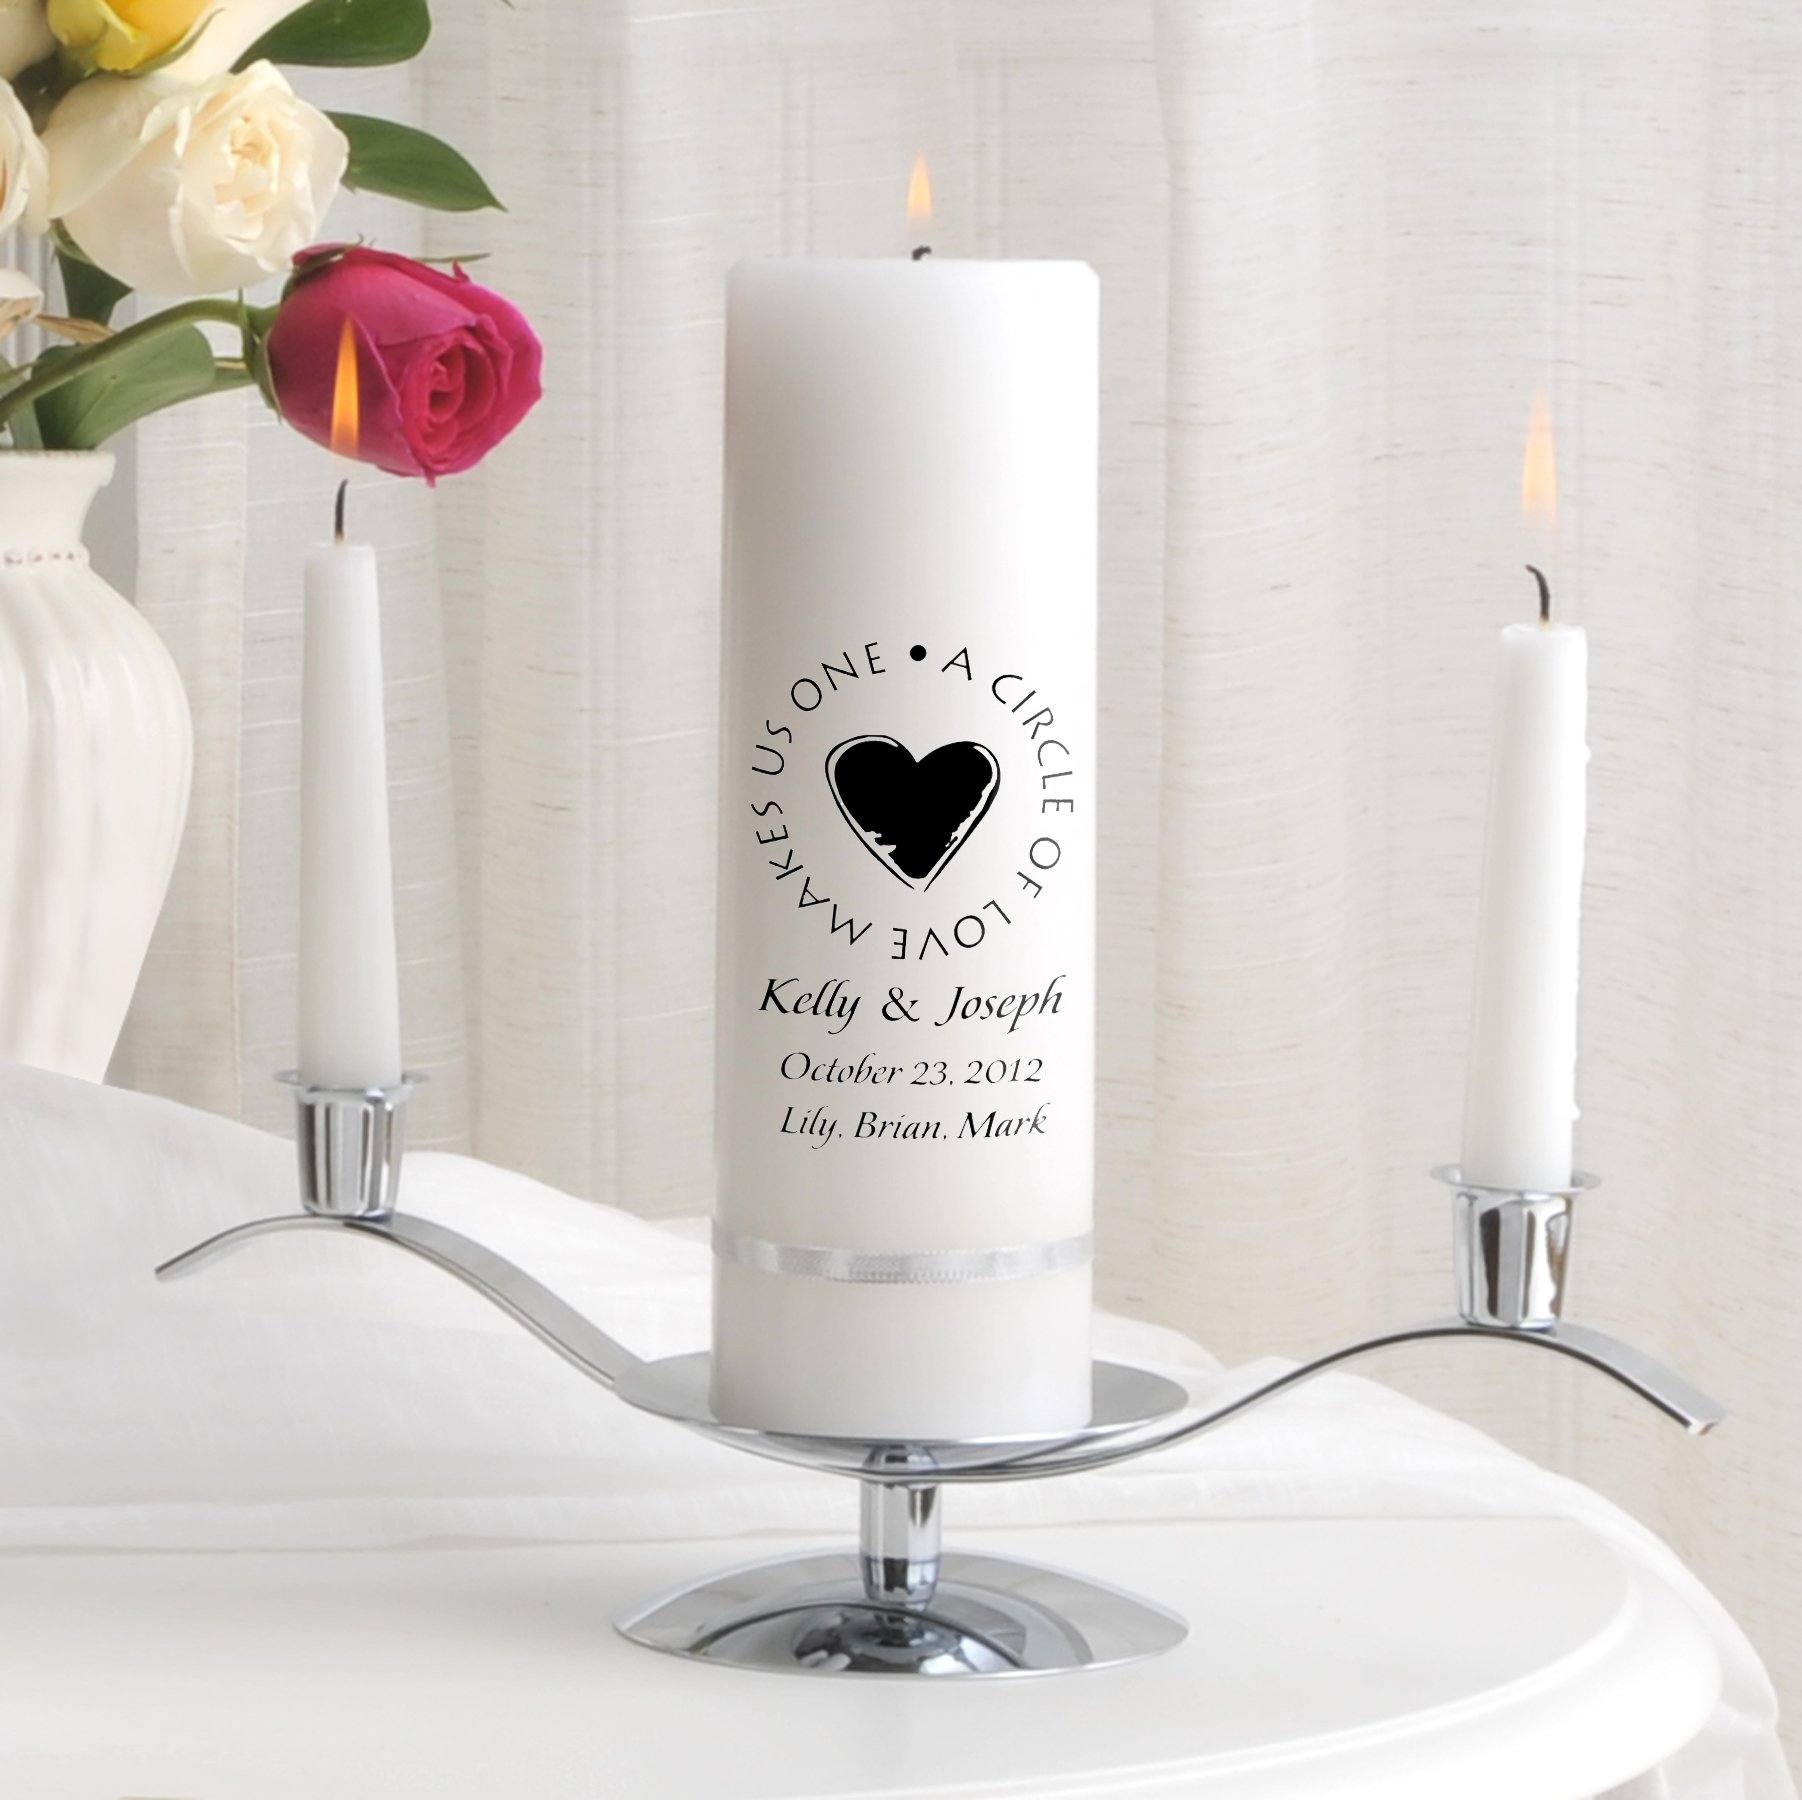 Personalized Wedding Unity Candle - Personalized Unity Candle Set - Second Marriage